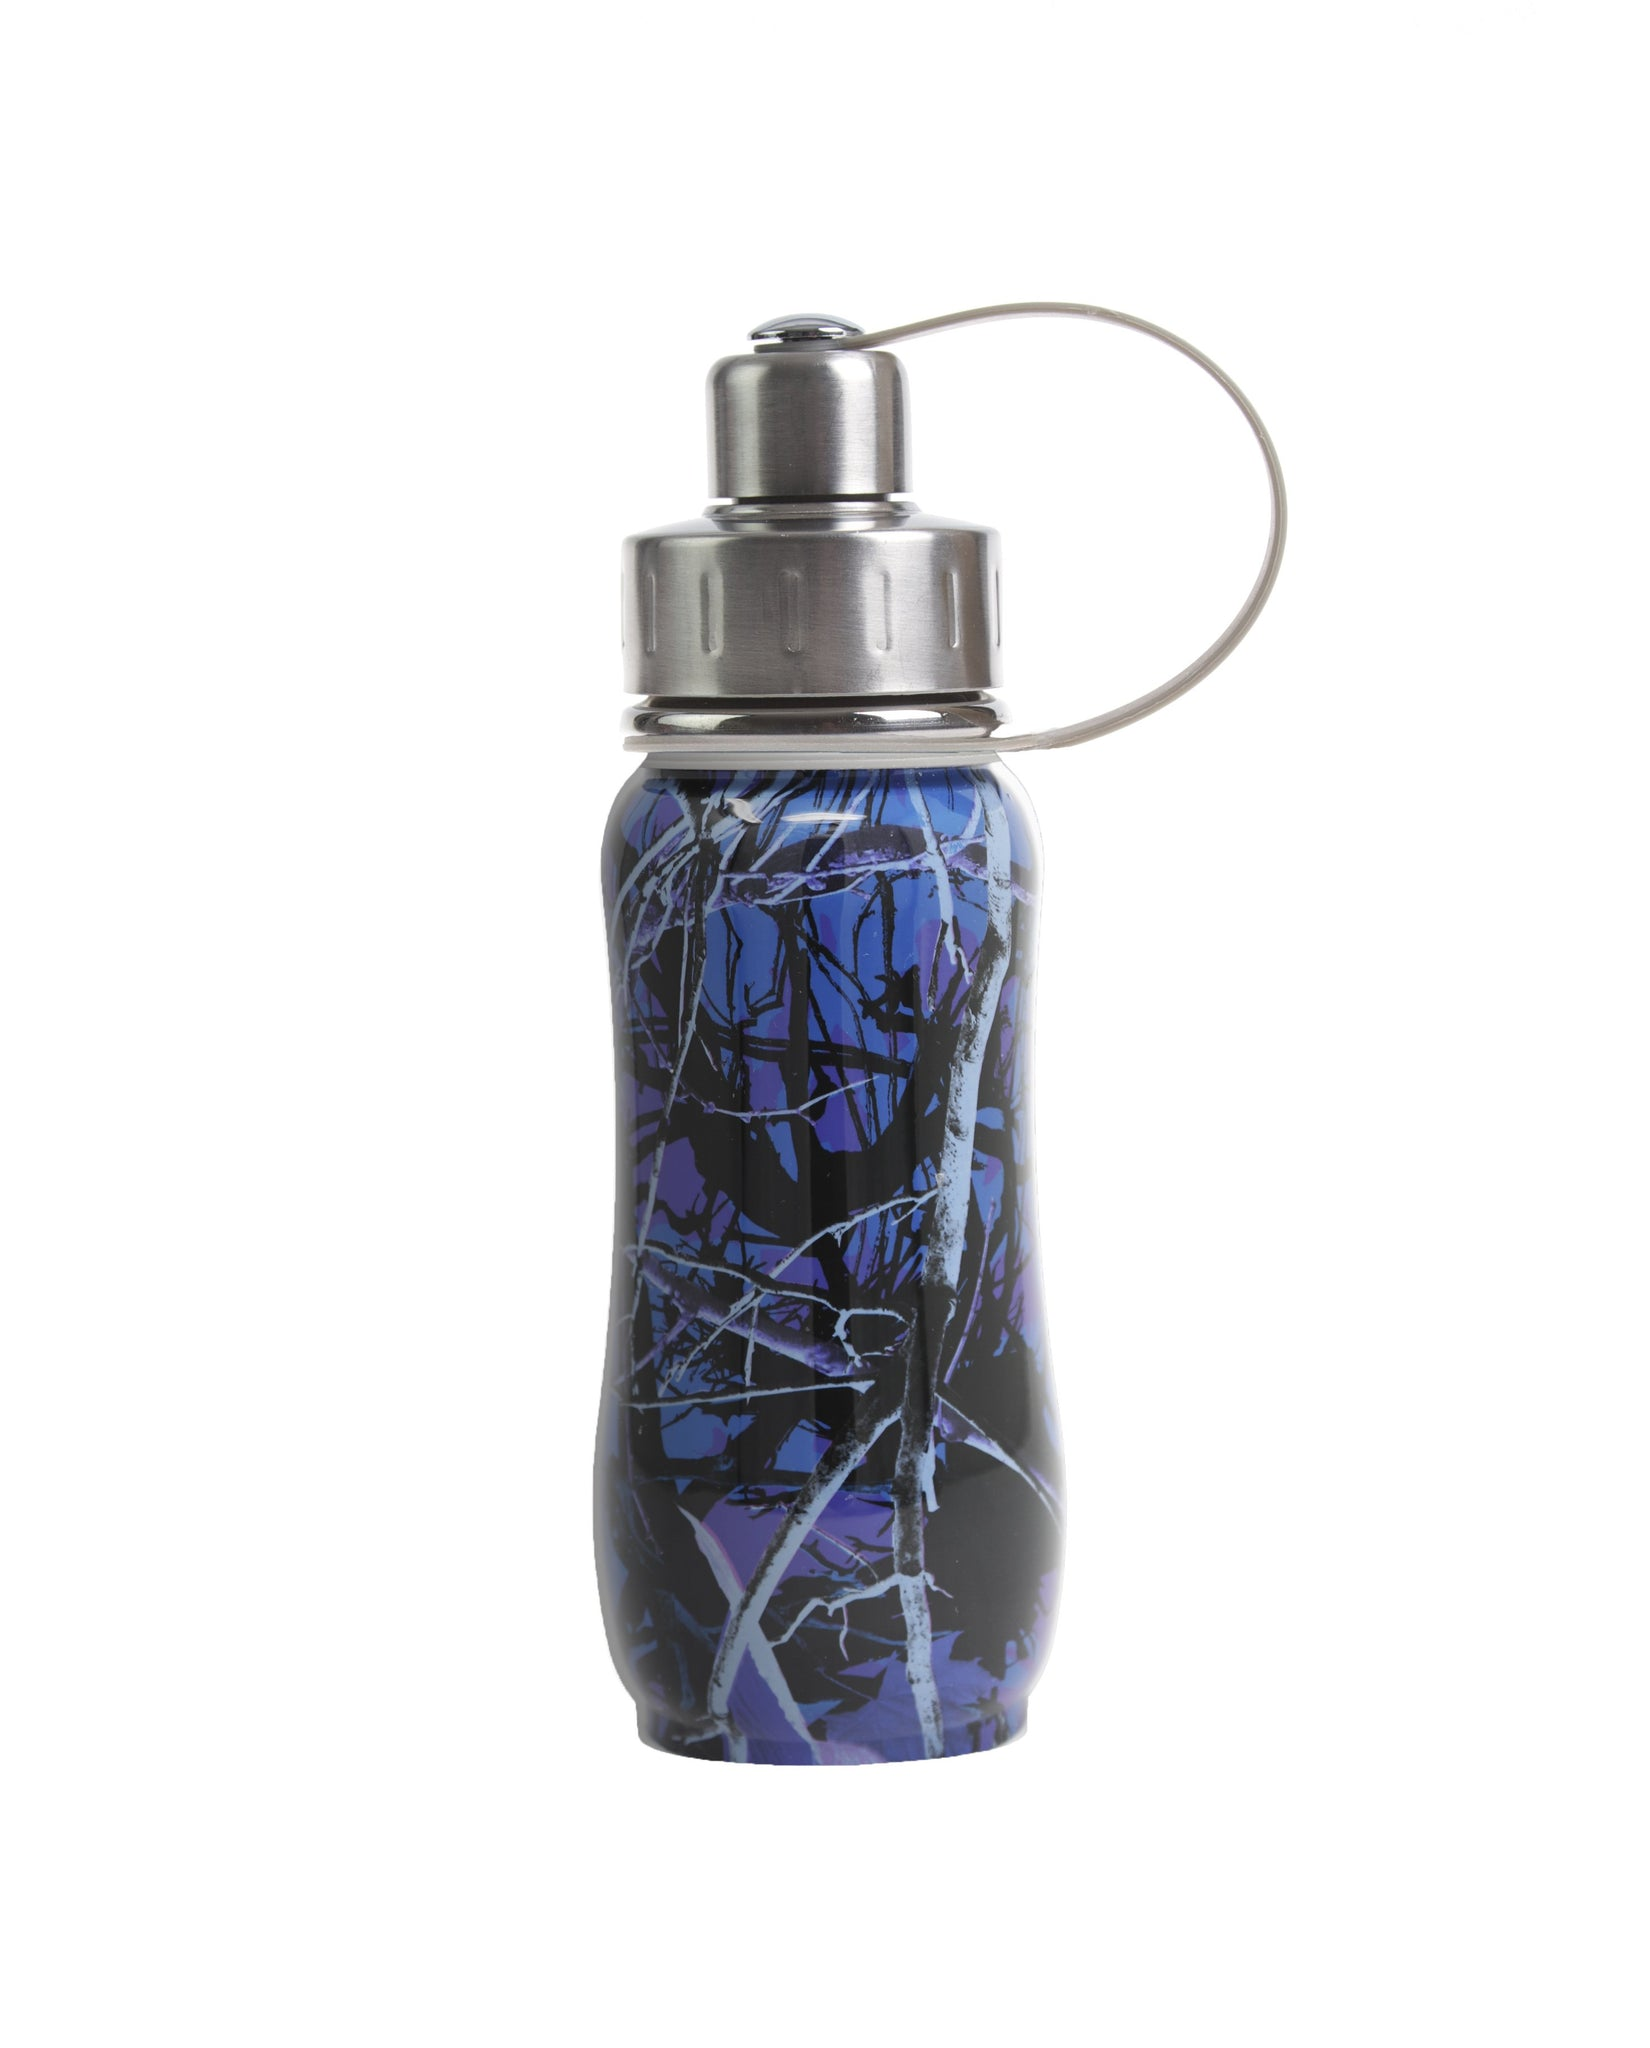 350 ml Blue 'Luxembourg Garden' stainless steel insulated water bottle greens your colour